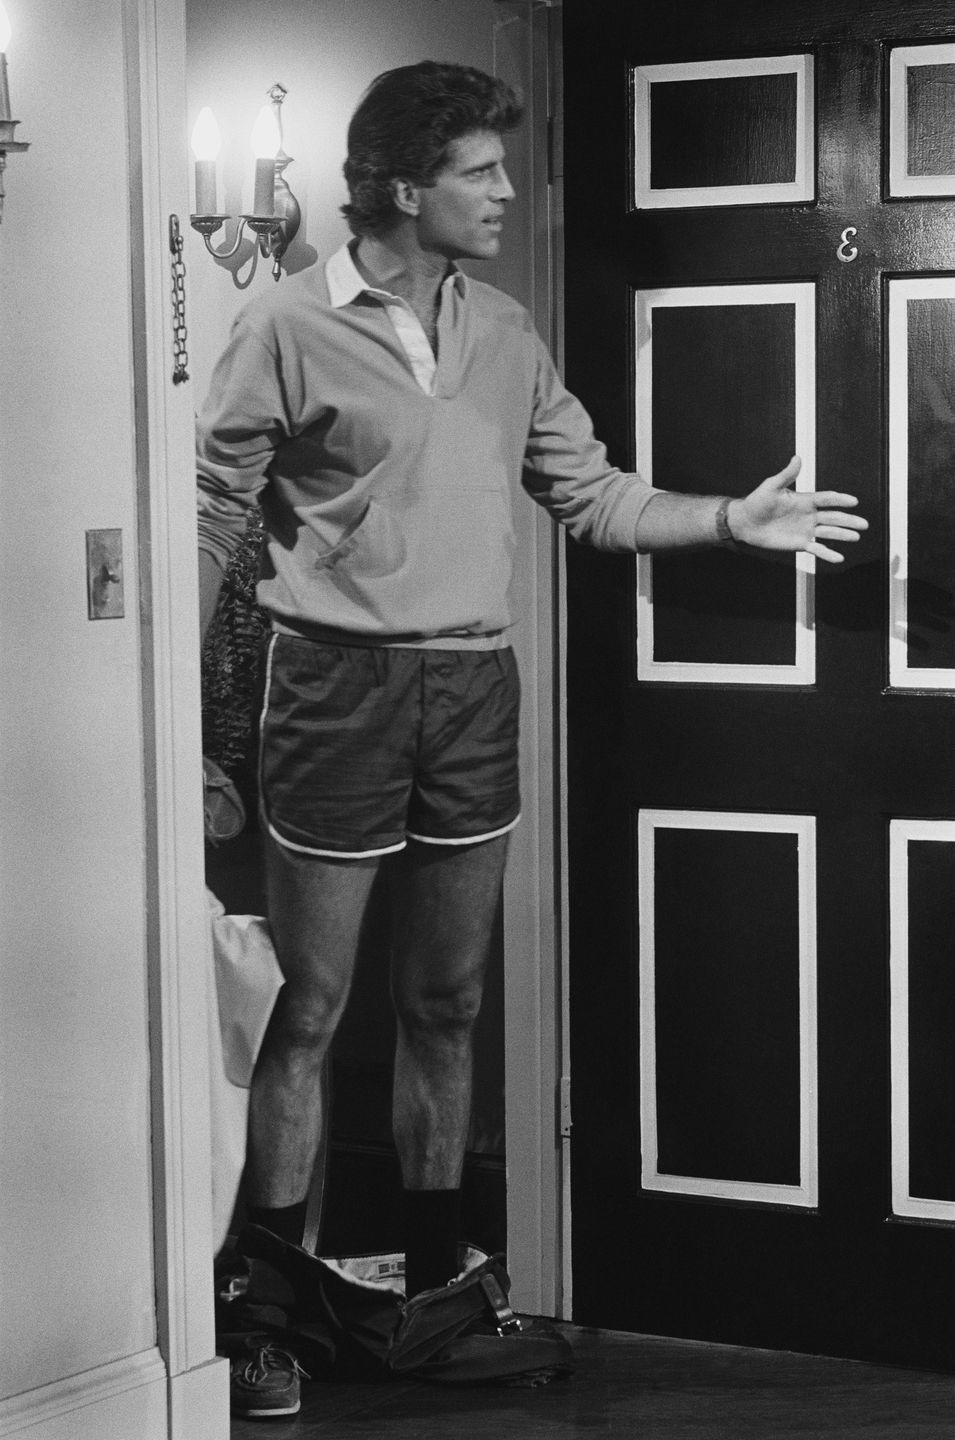 <p>Danson, in an episode of Cheers, shows off how to wear shorts as underpants while making a memorable (and borderline creepy) entrance. </p>